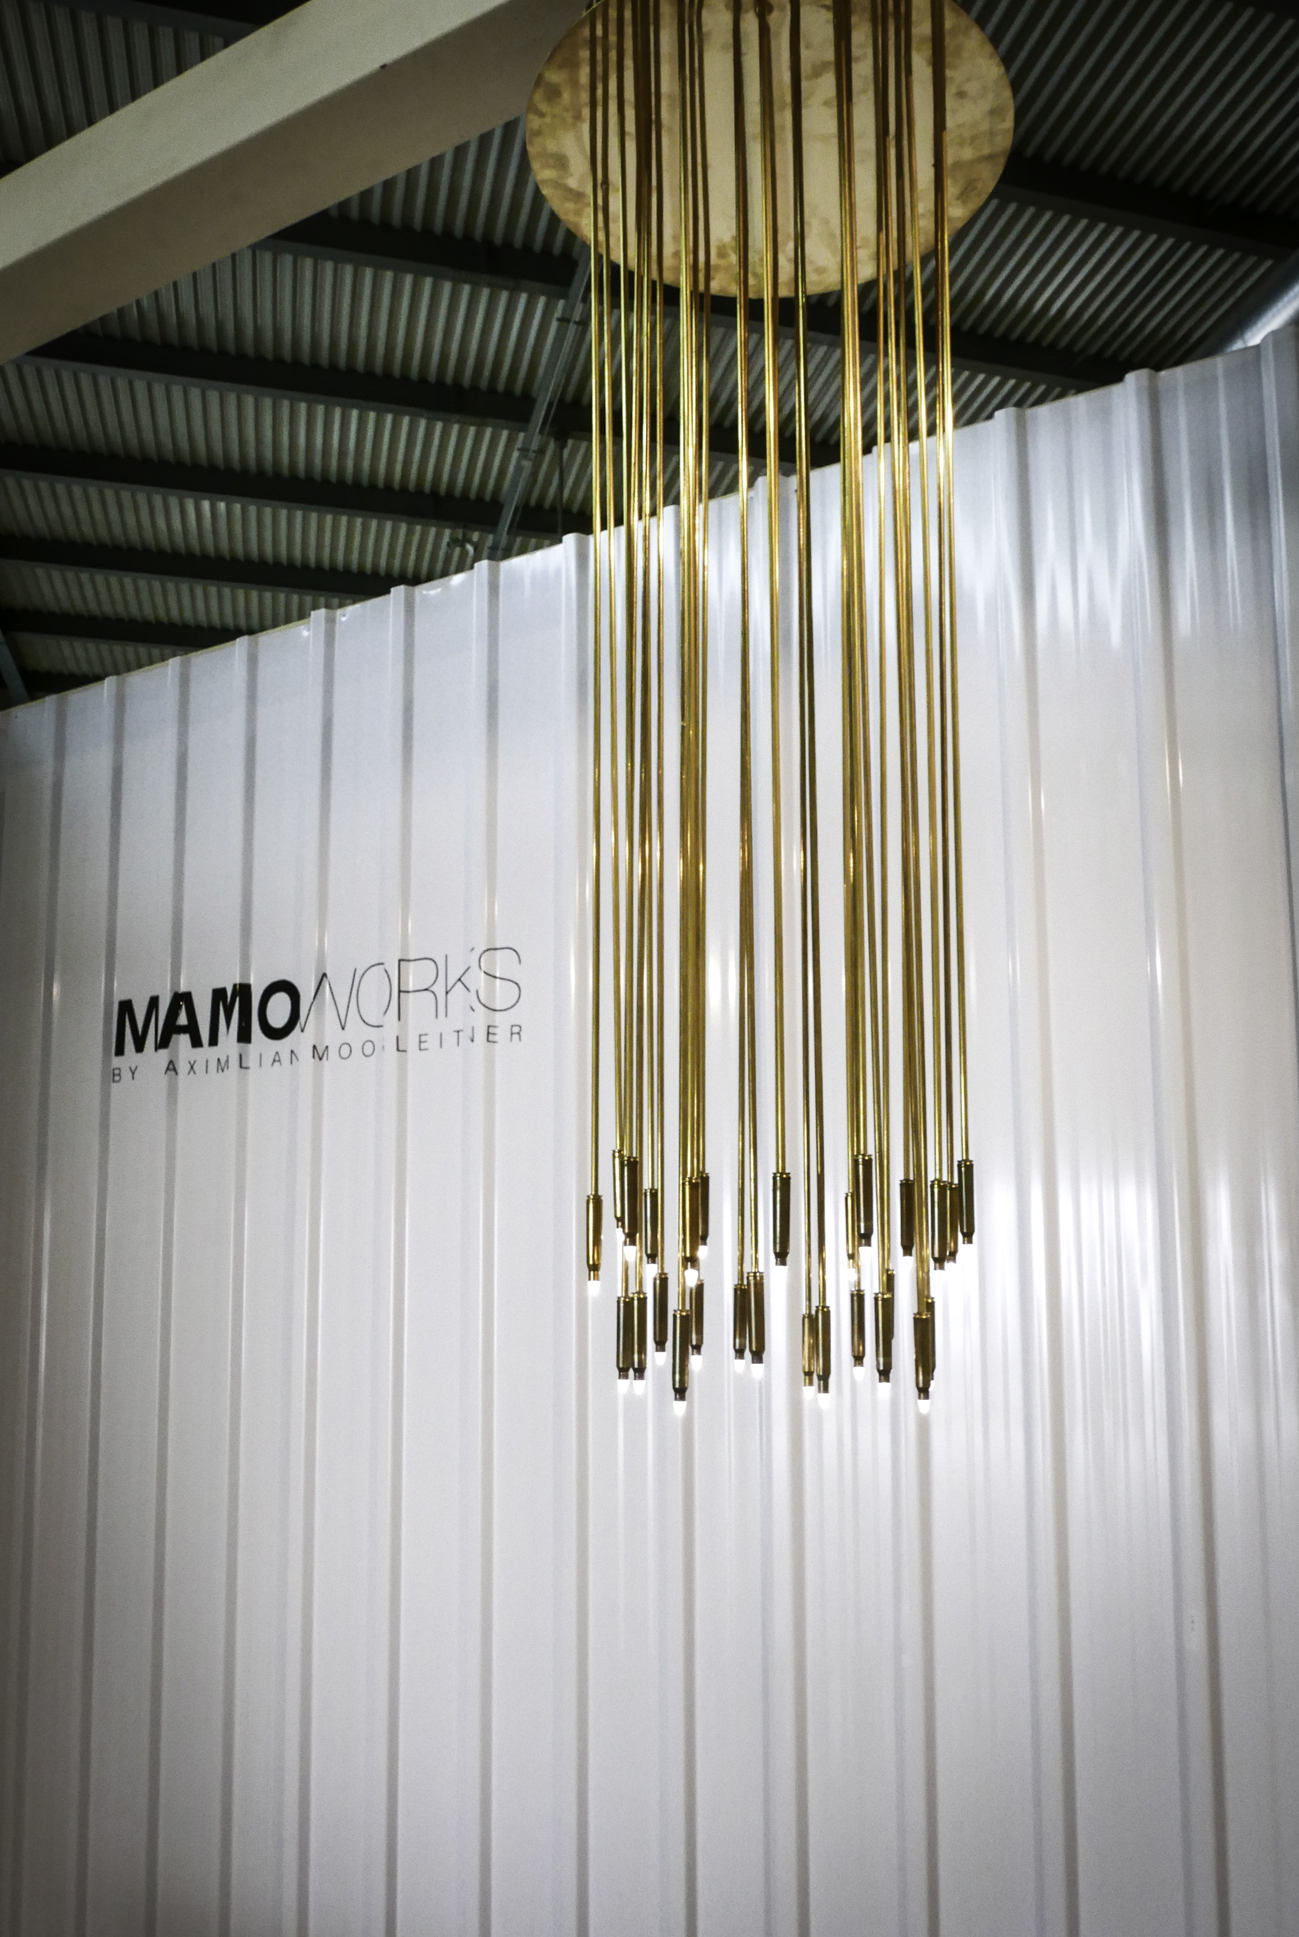 MAMOWORKS. Bullet Lamp. Furniture Design. Ceiling Lamp. Lighting. Design. Maximilian Moosleitner. Salzburg. Austria